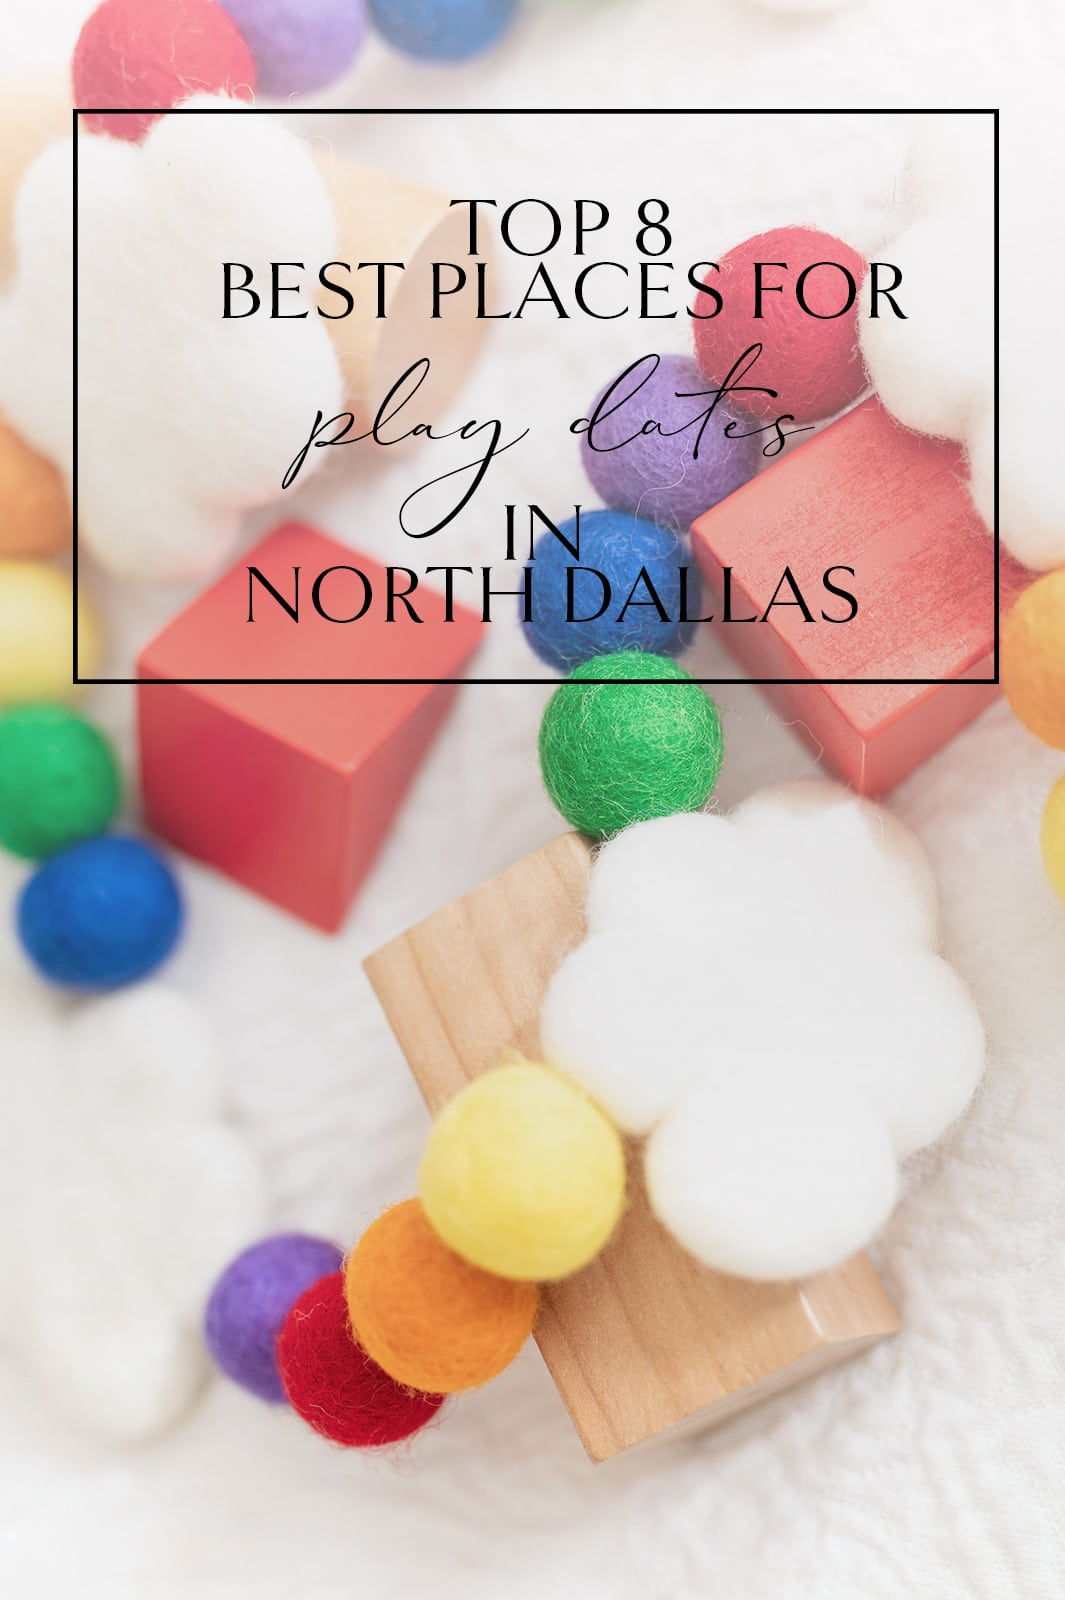 Top 7 Best Places for Play Dates in North Dallas